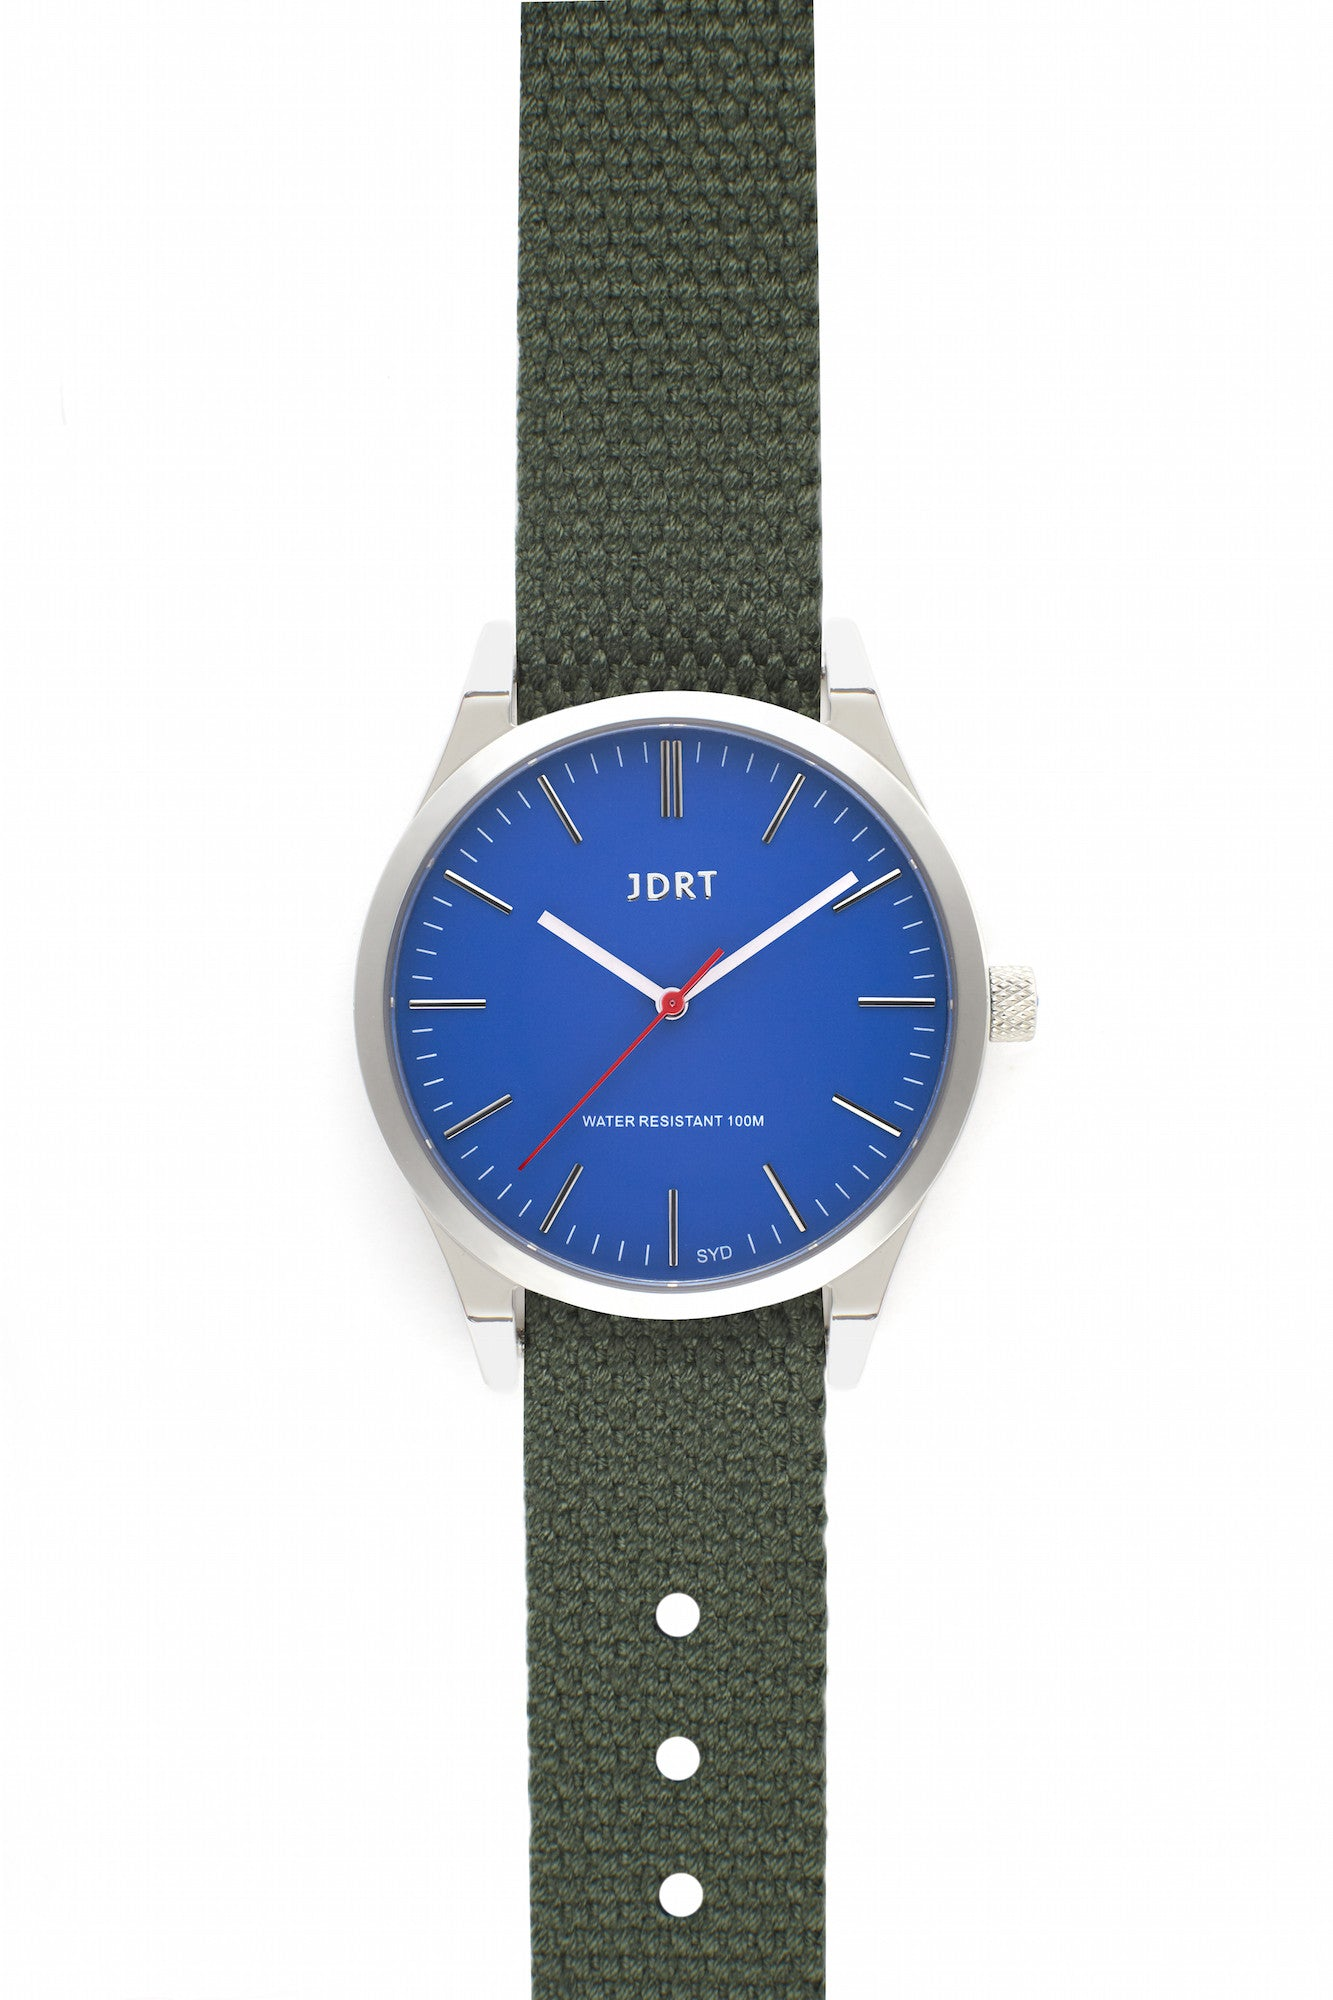 Azure Face with Army Canvas Watch Band